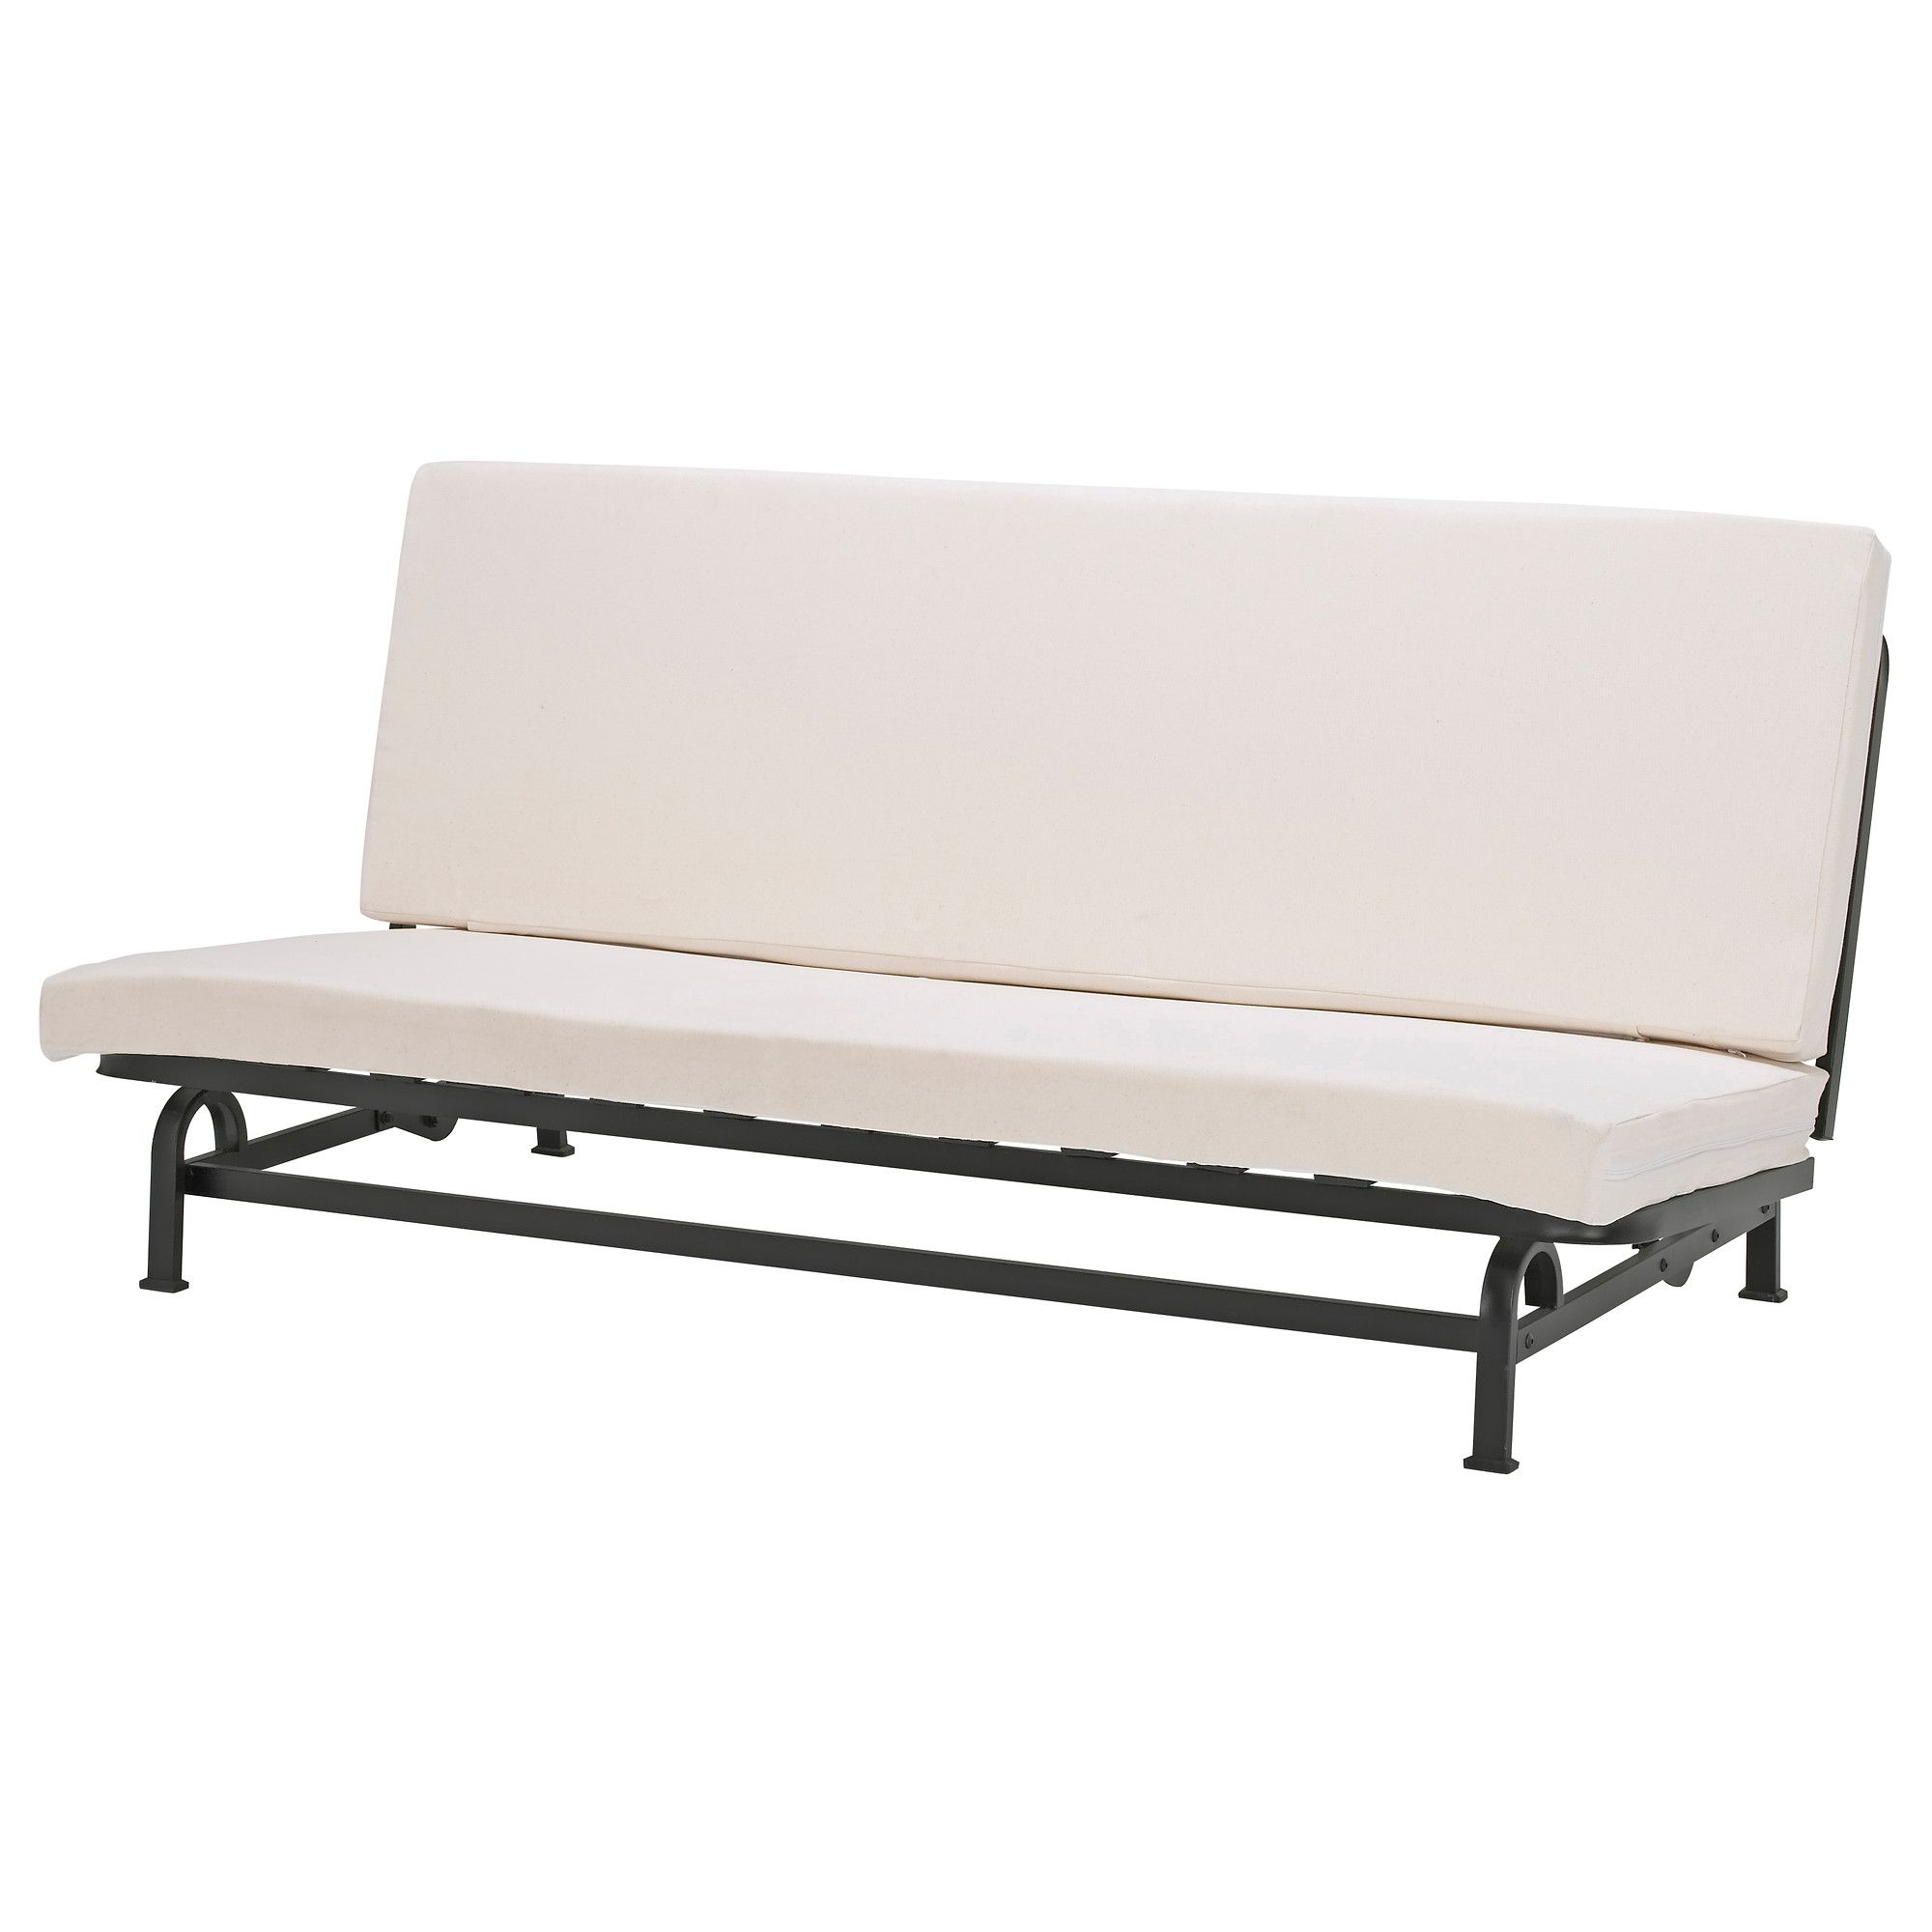 reviewing beds guide futons sofa buy quality online cheap bed best futon fabulous price